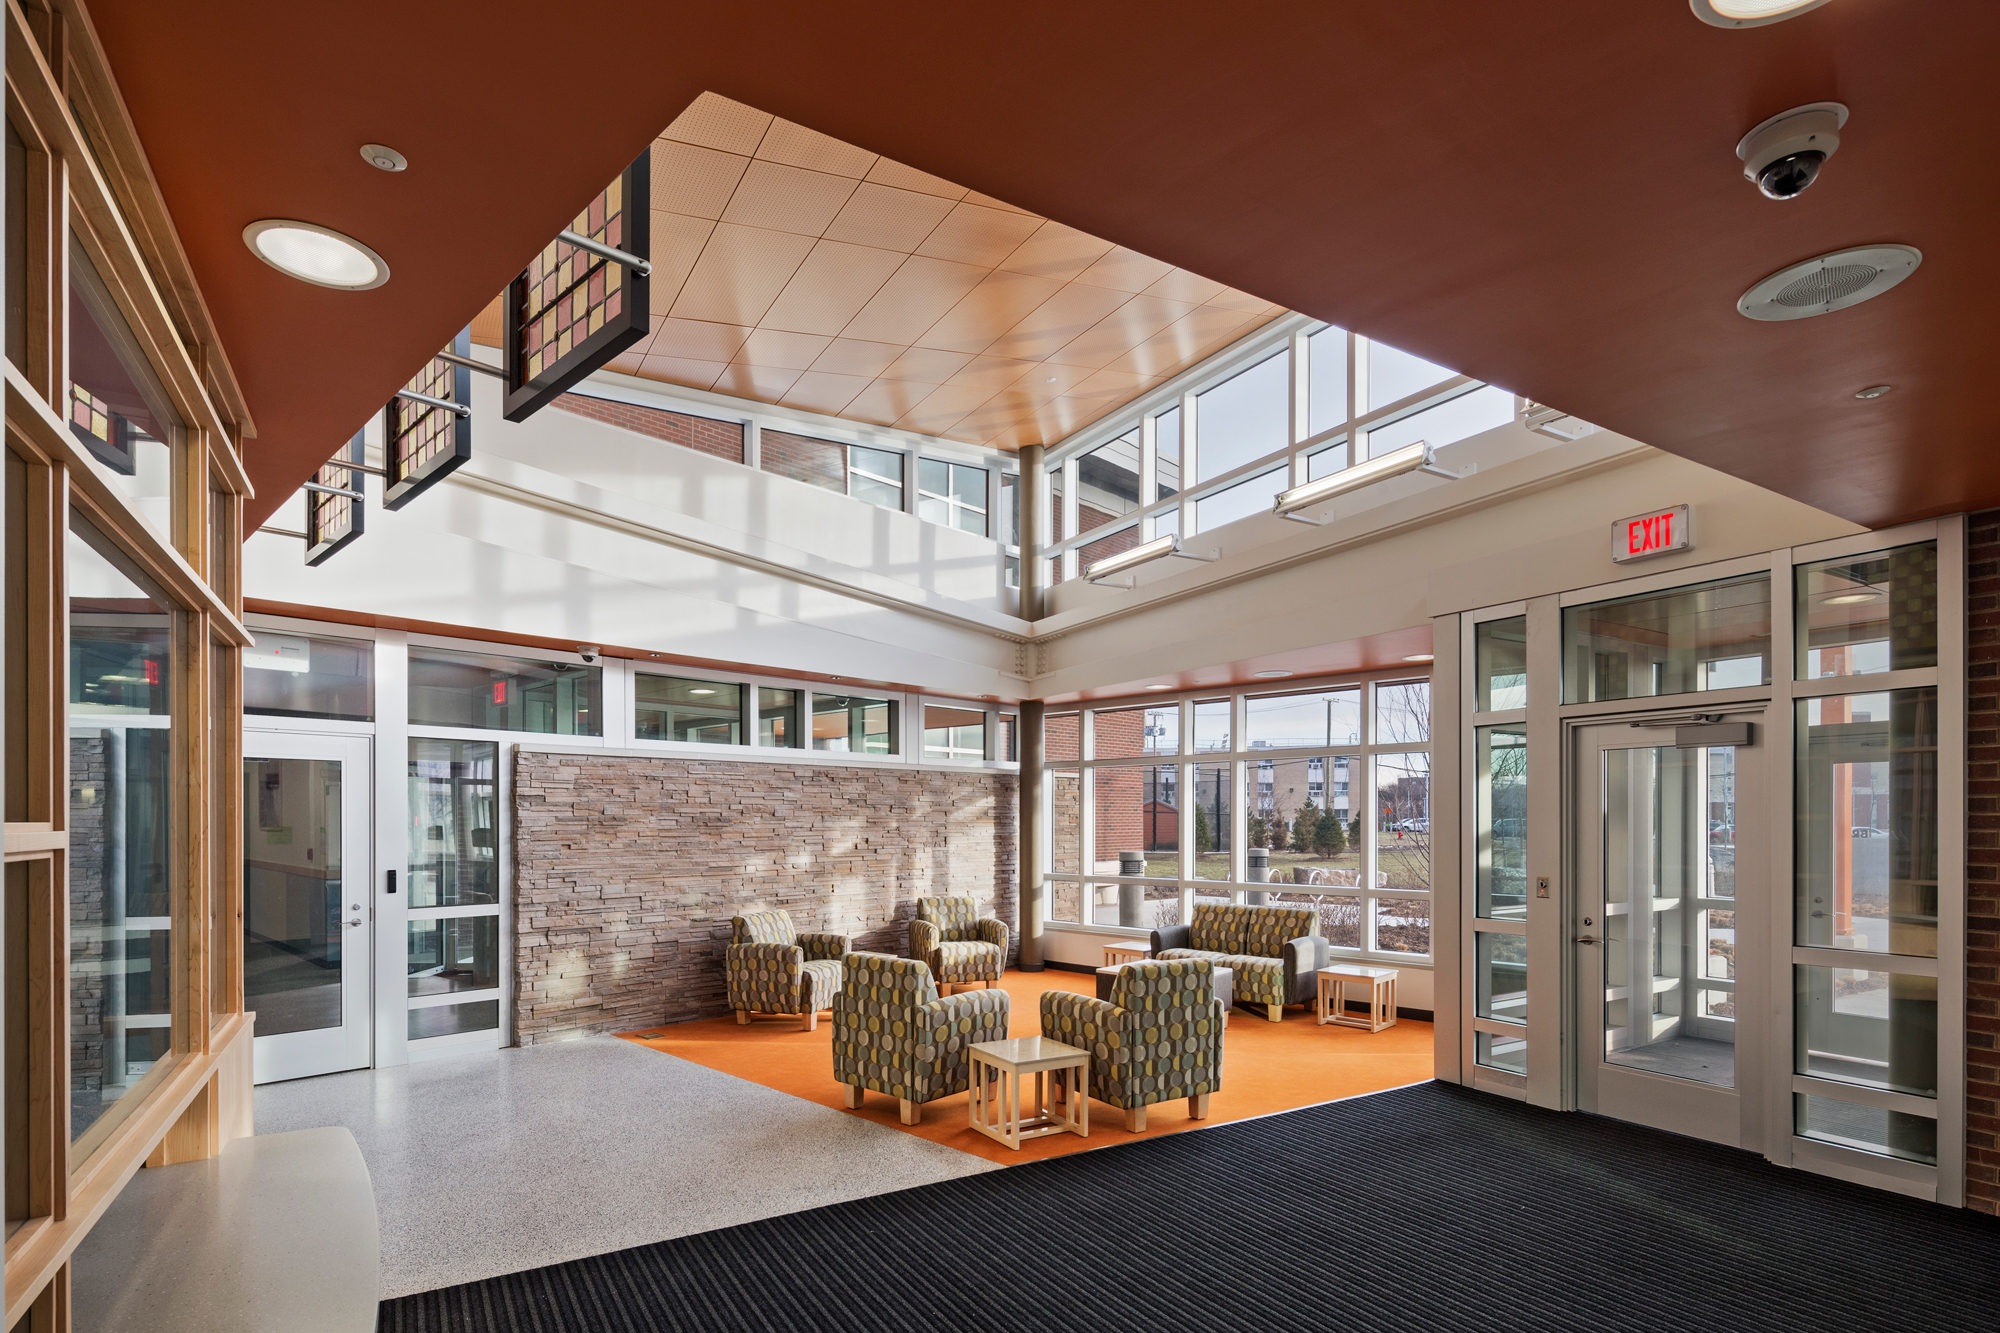 Bronx Interior - Behavioral Health Architecture & Design